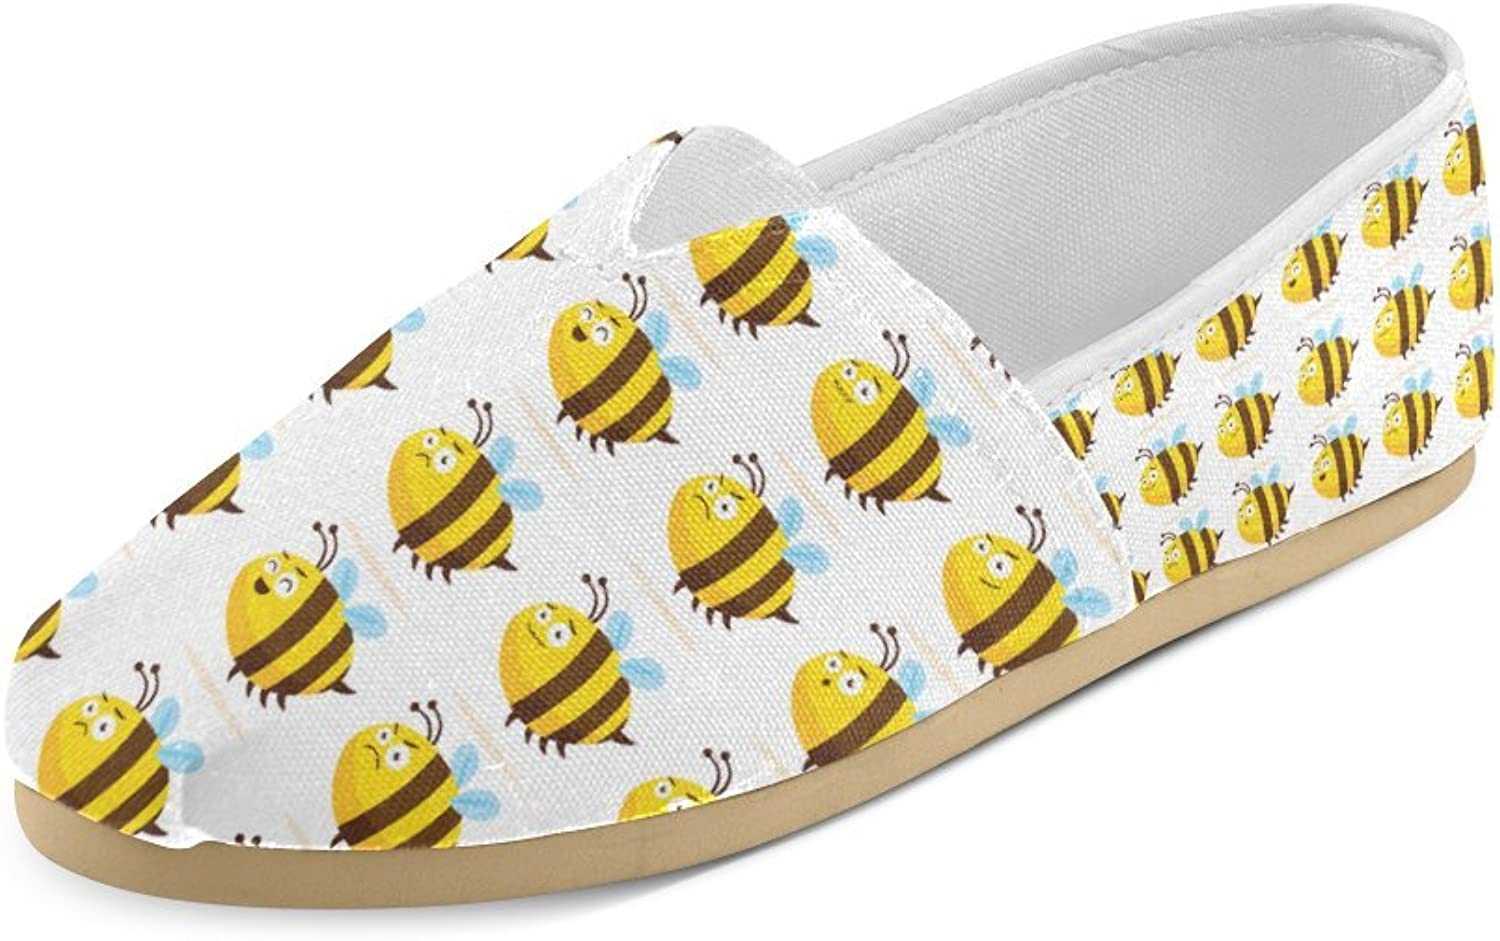 HUANGDAISY Unisex shoes Fat Honeybee Beehive Pattern Casual Canvas Loafers for Bia Kids Girl Or Men